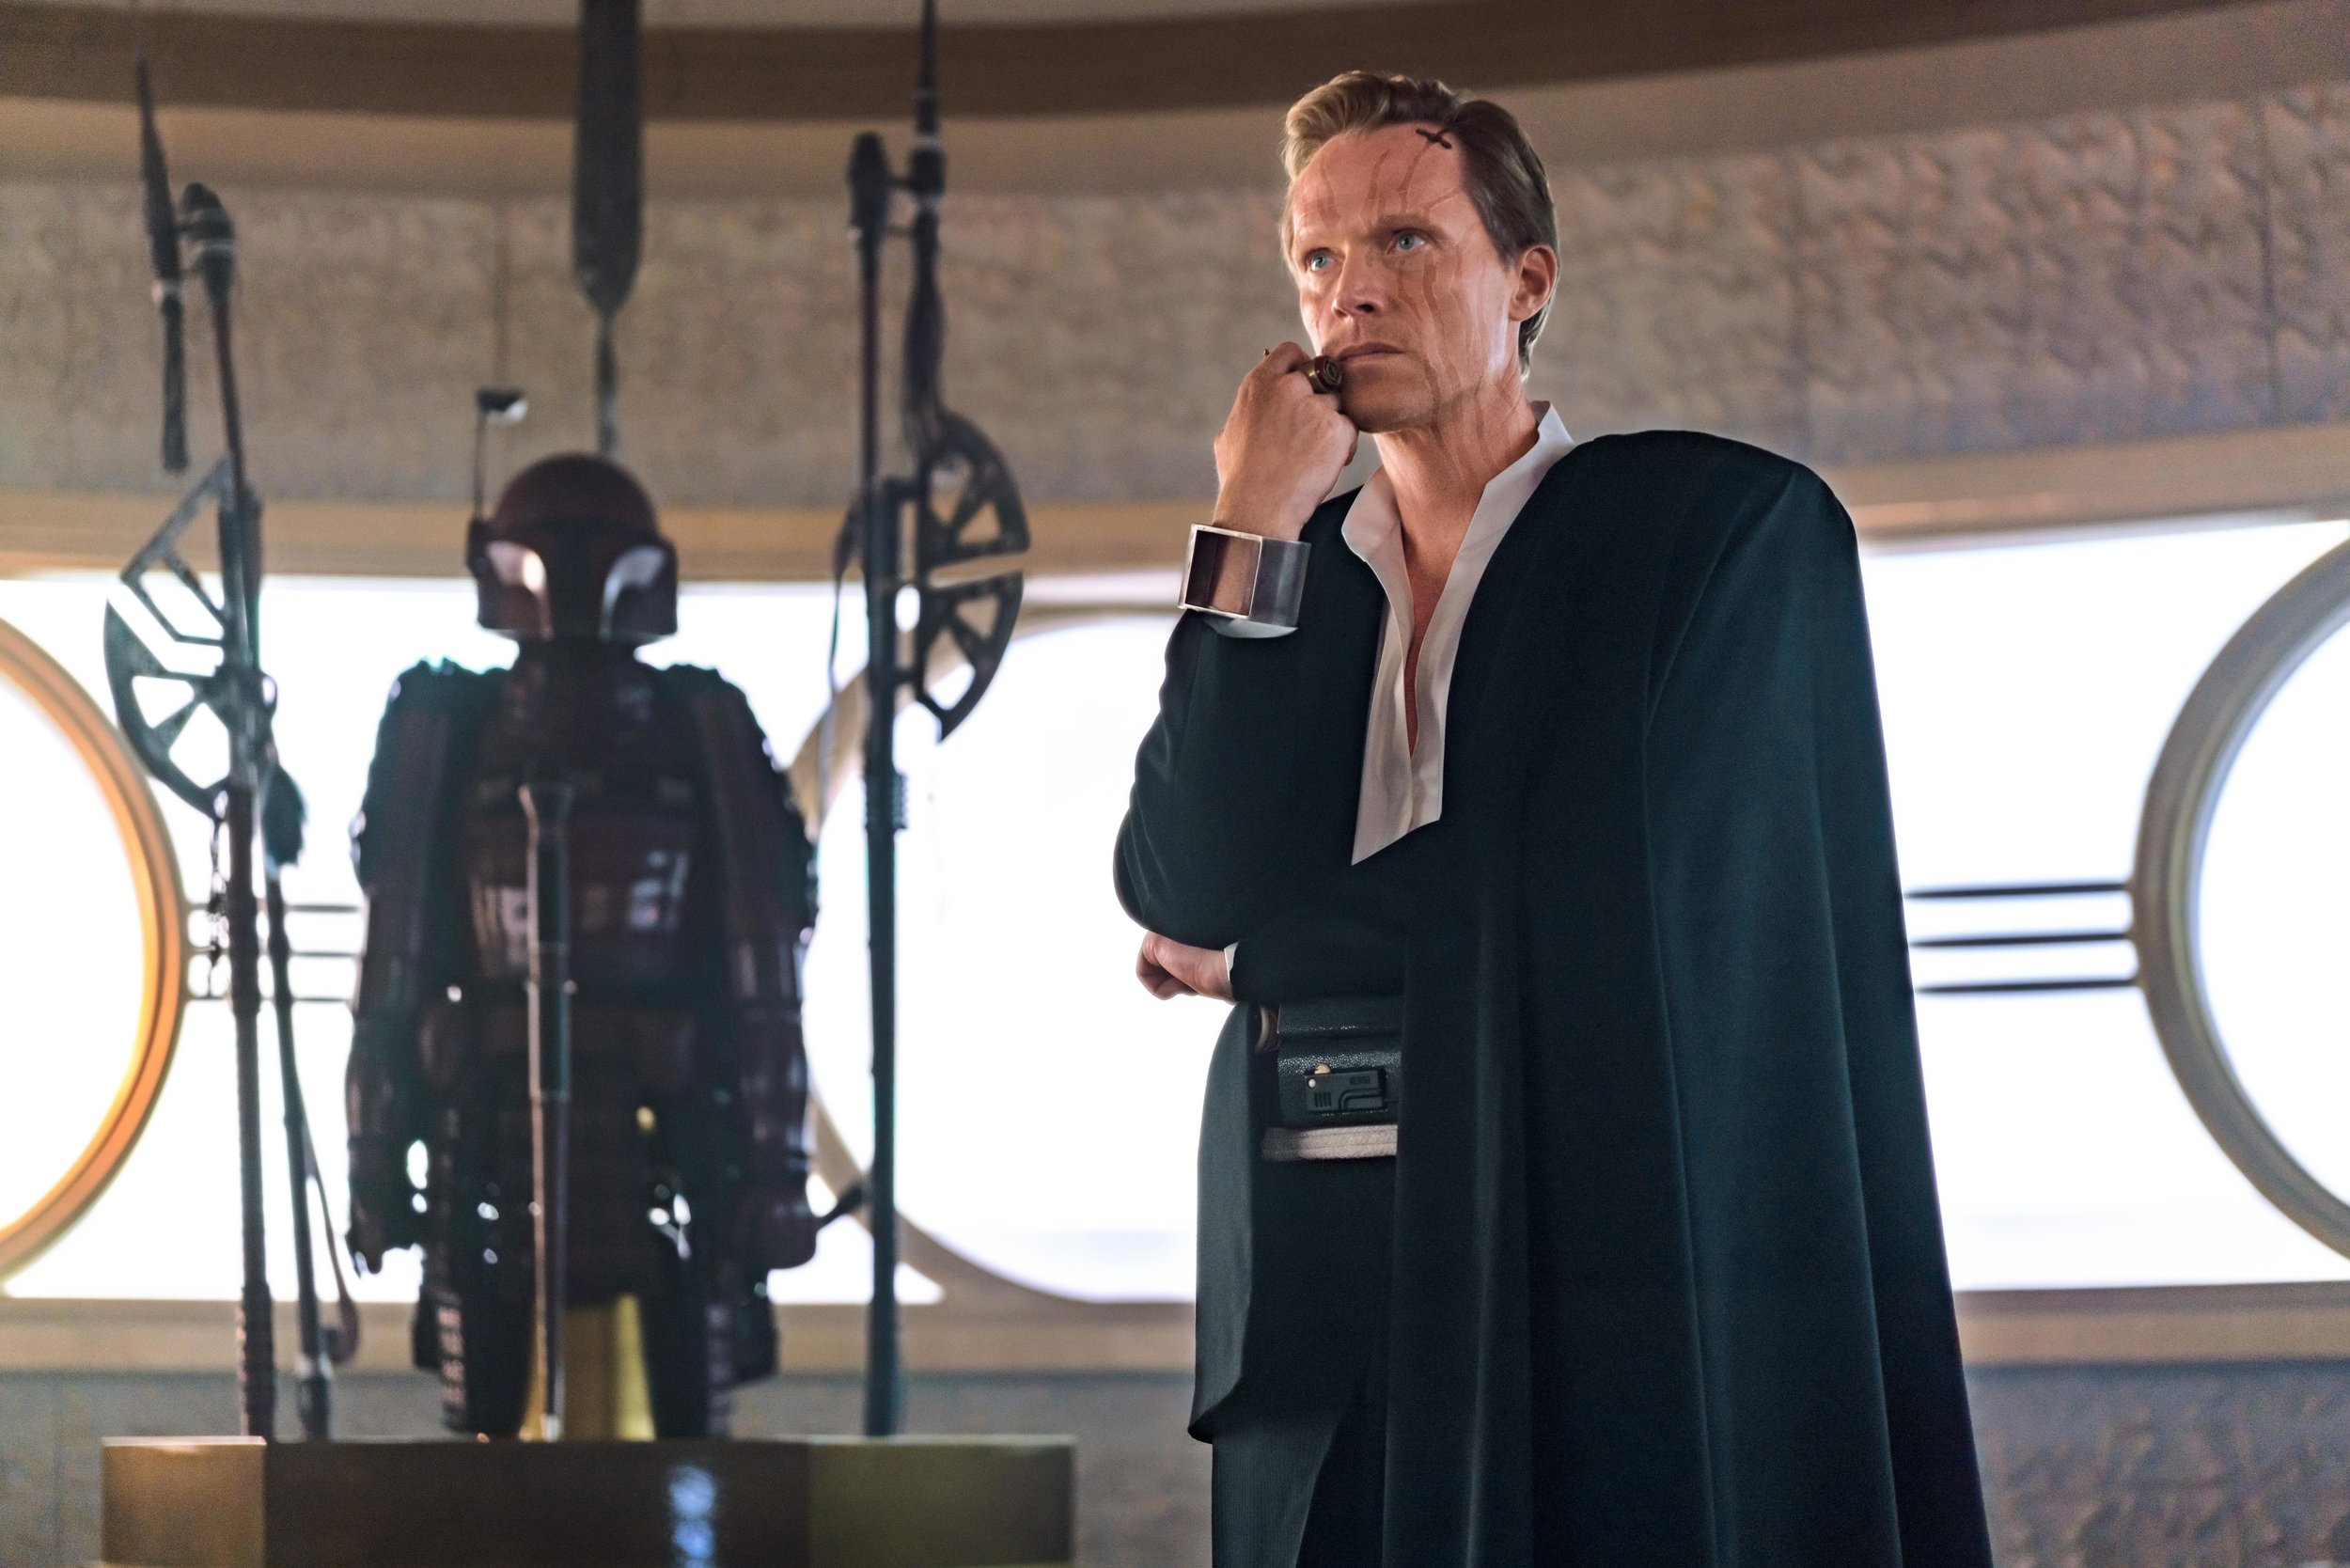 Paul Bettany as the sadistic Dryden Vos in Solo: A Star Wars Story